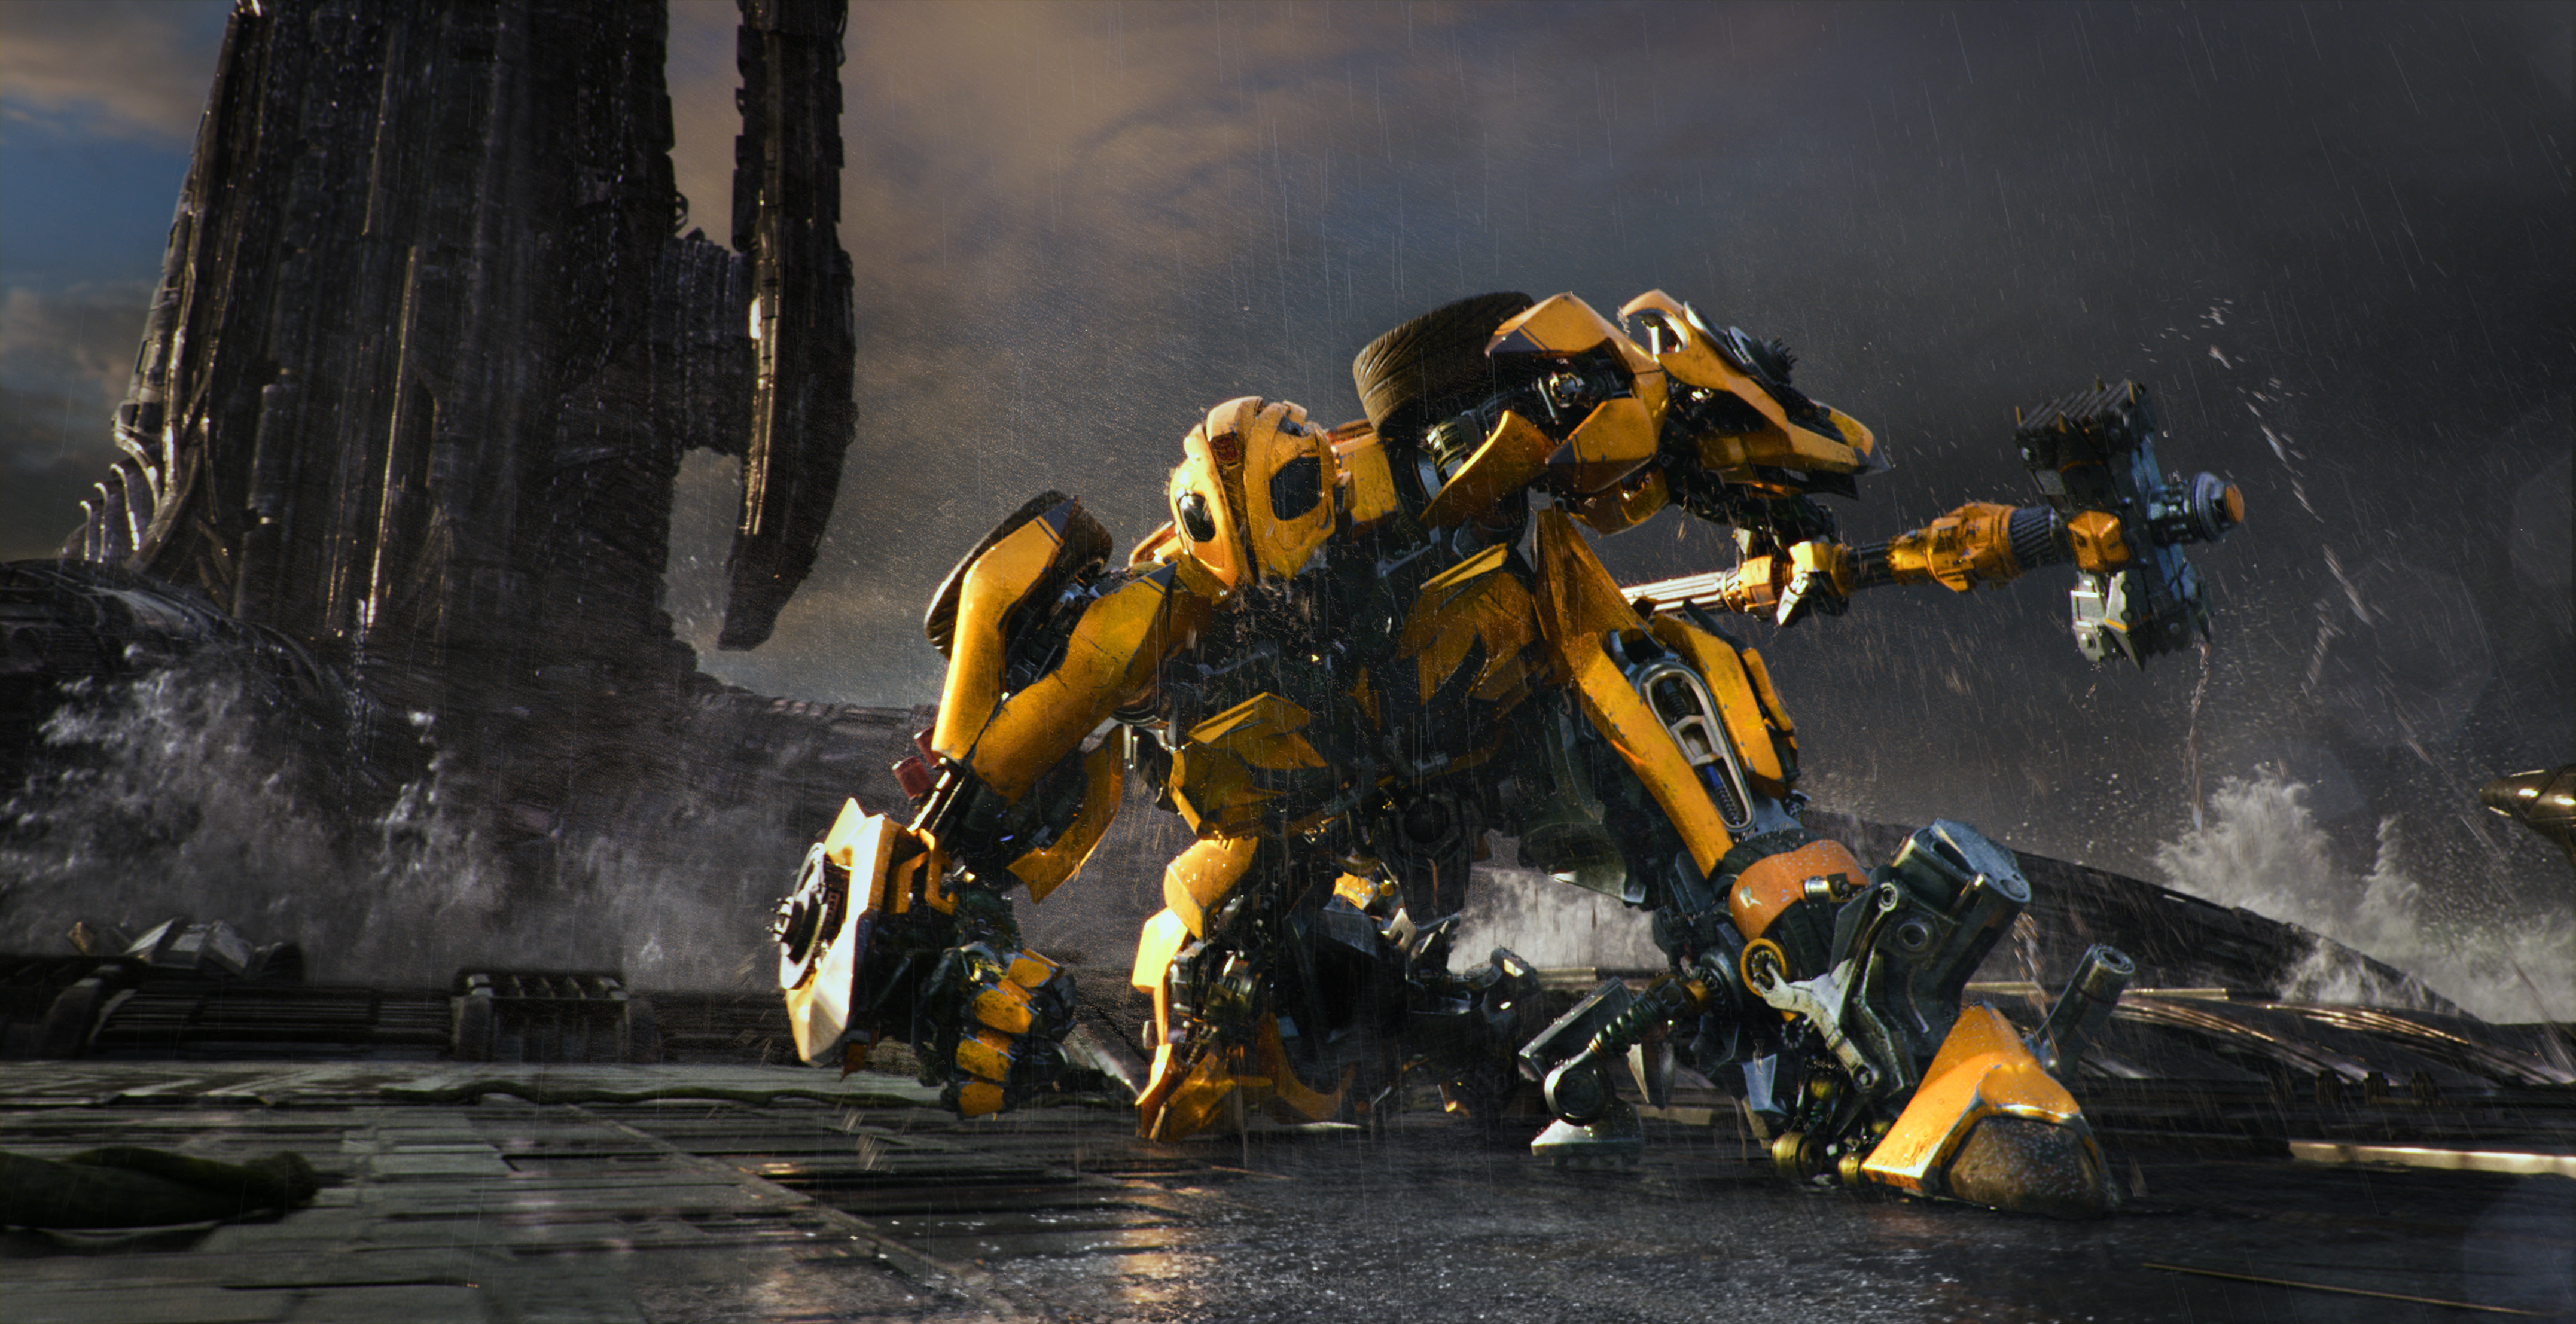 In 'The Last Knight,' round 5 for the Transformers